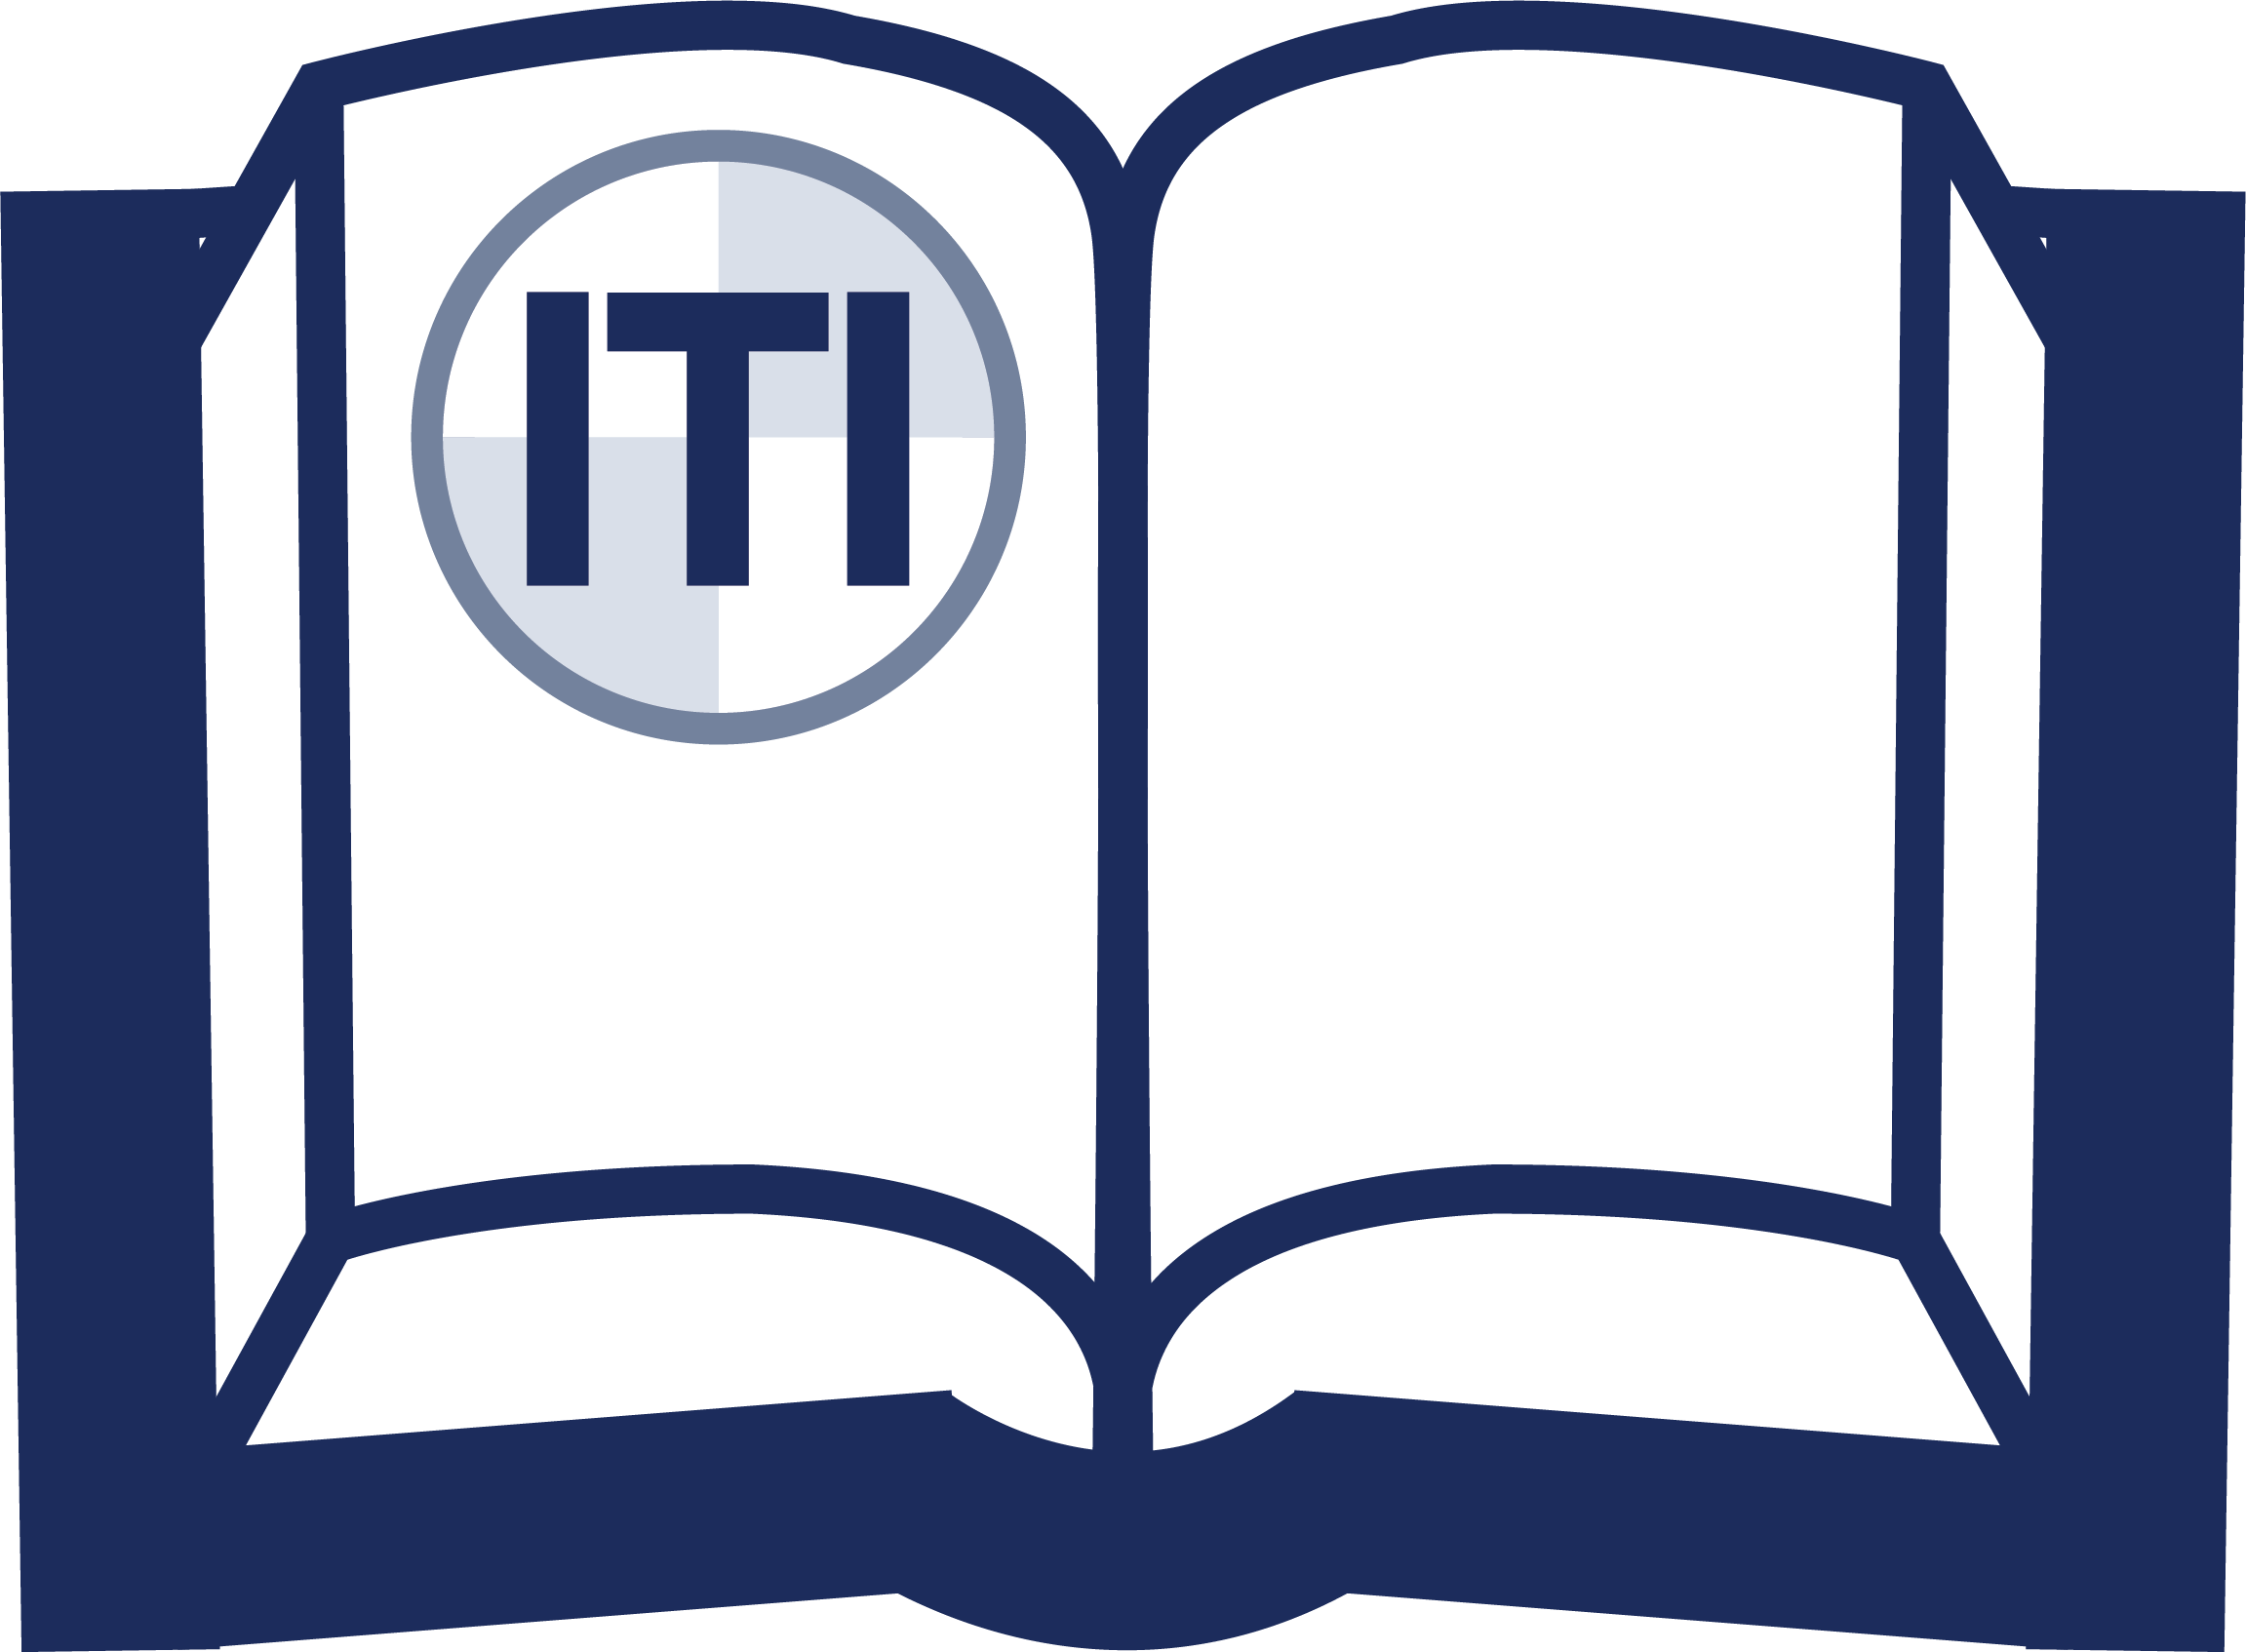 ITI_Icon_BS_2017.png